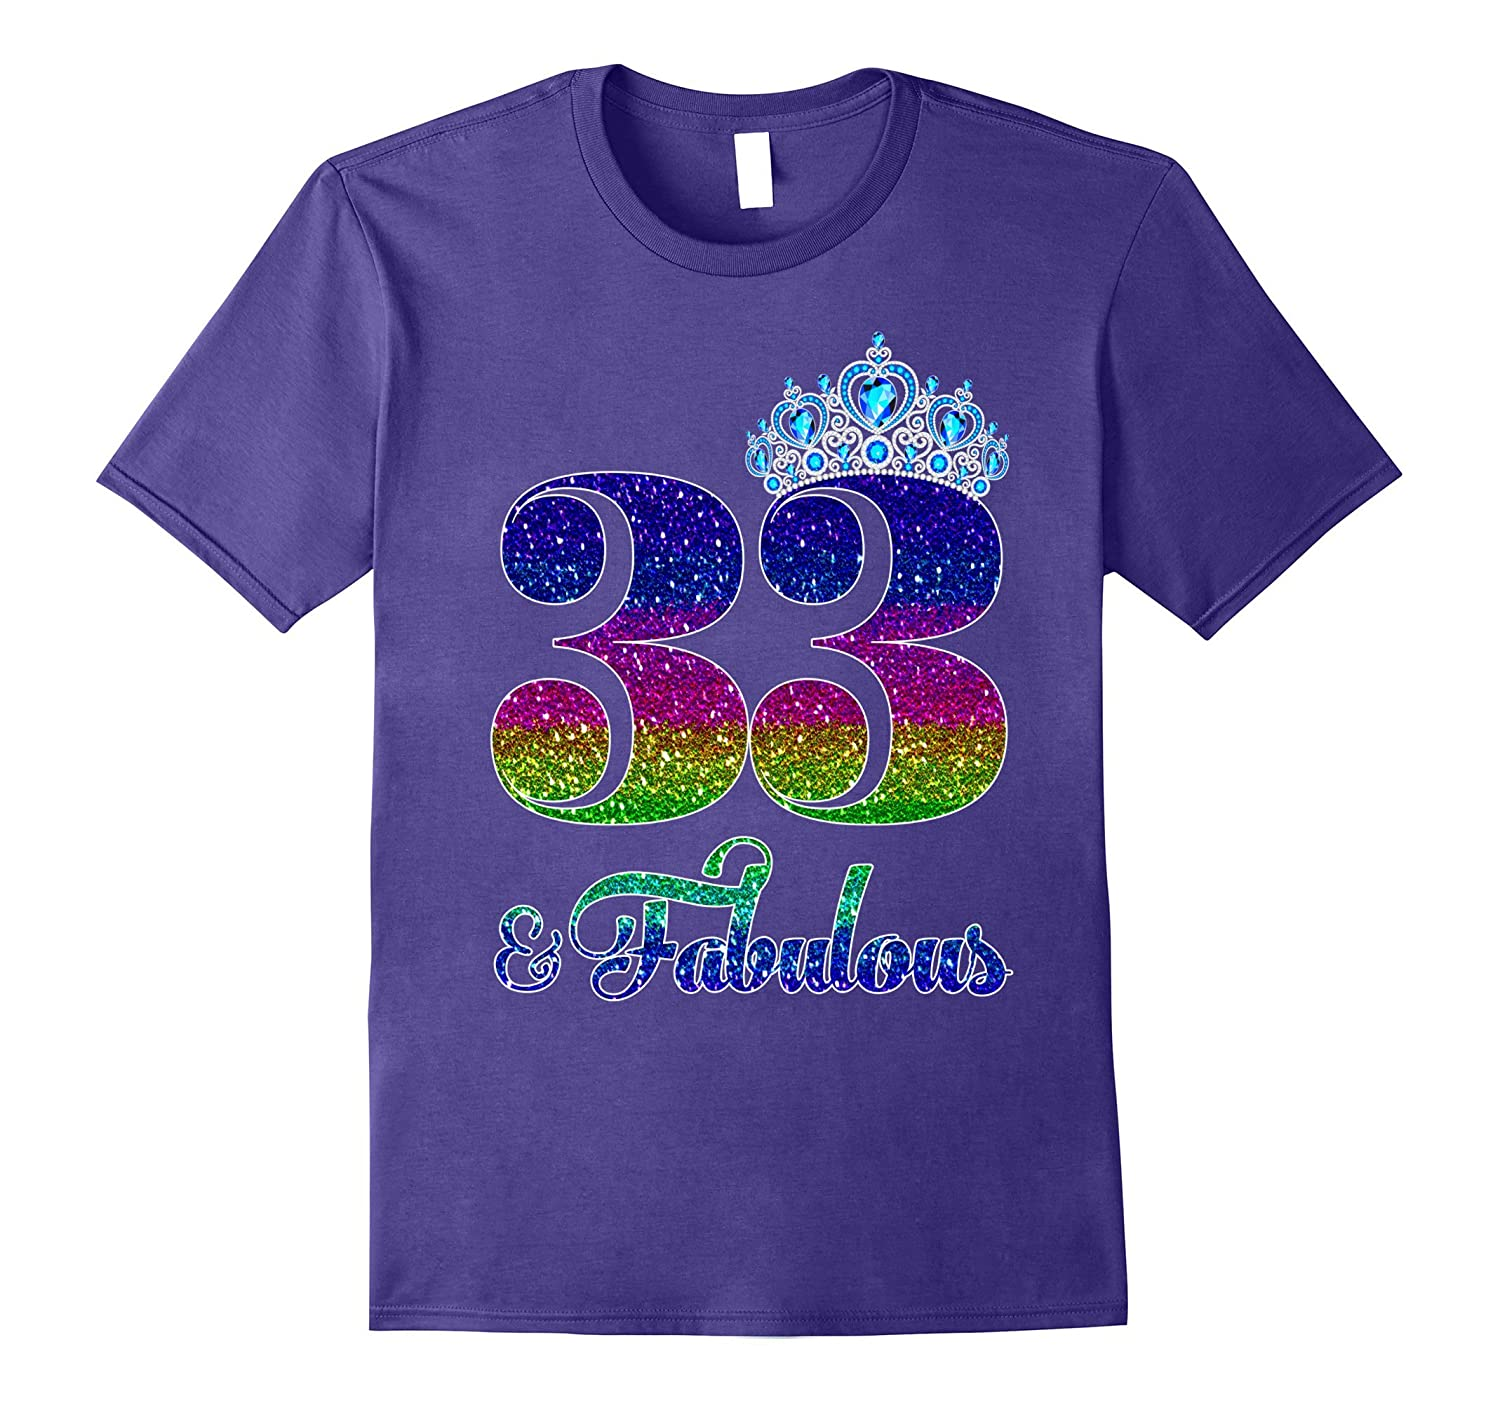 33 And Fabulous Queen 33rd Birthday TShirt-TJ